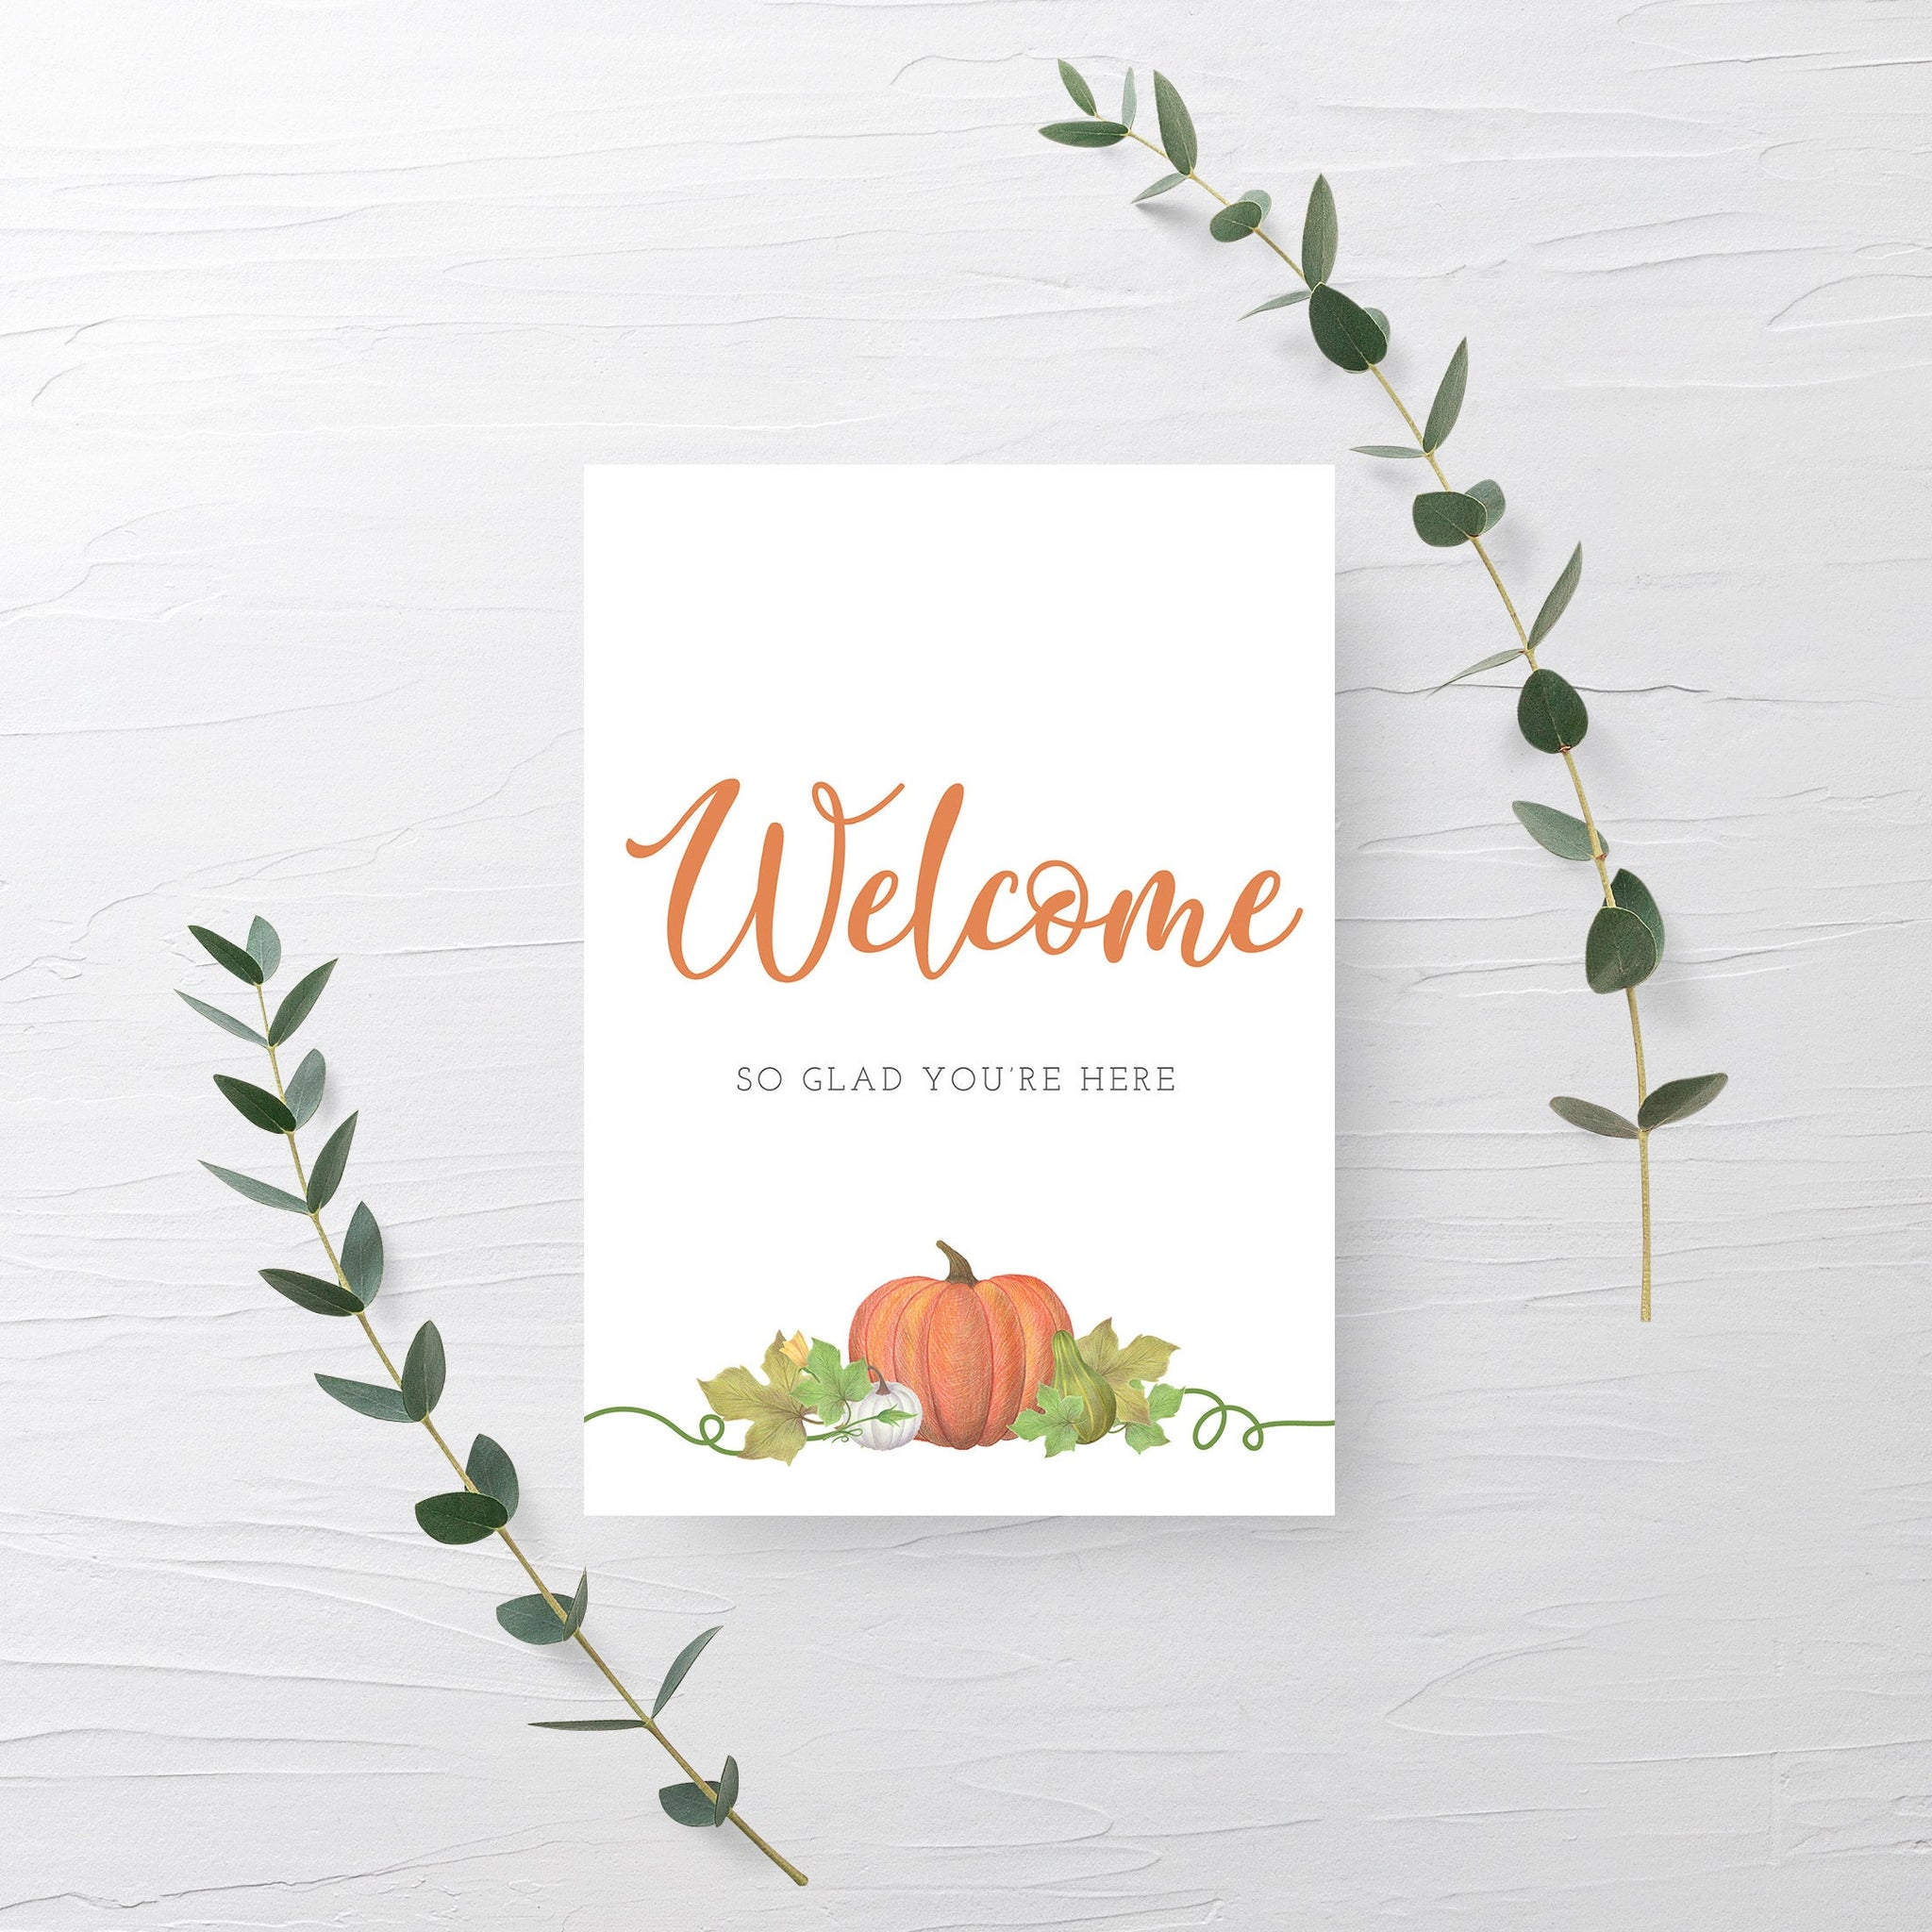 Little Pumpkin Baby Shower Welcome Sign Printable, Pumpkin Birthday Sign, Pumpkin Baby Shower Decorations, INSTANT DOWNLOAD - HP100 - @PlumPolkaDot